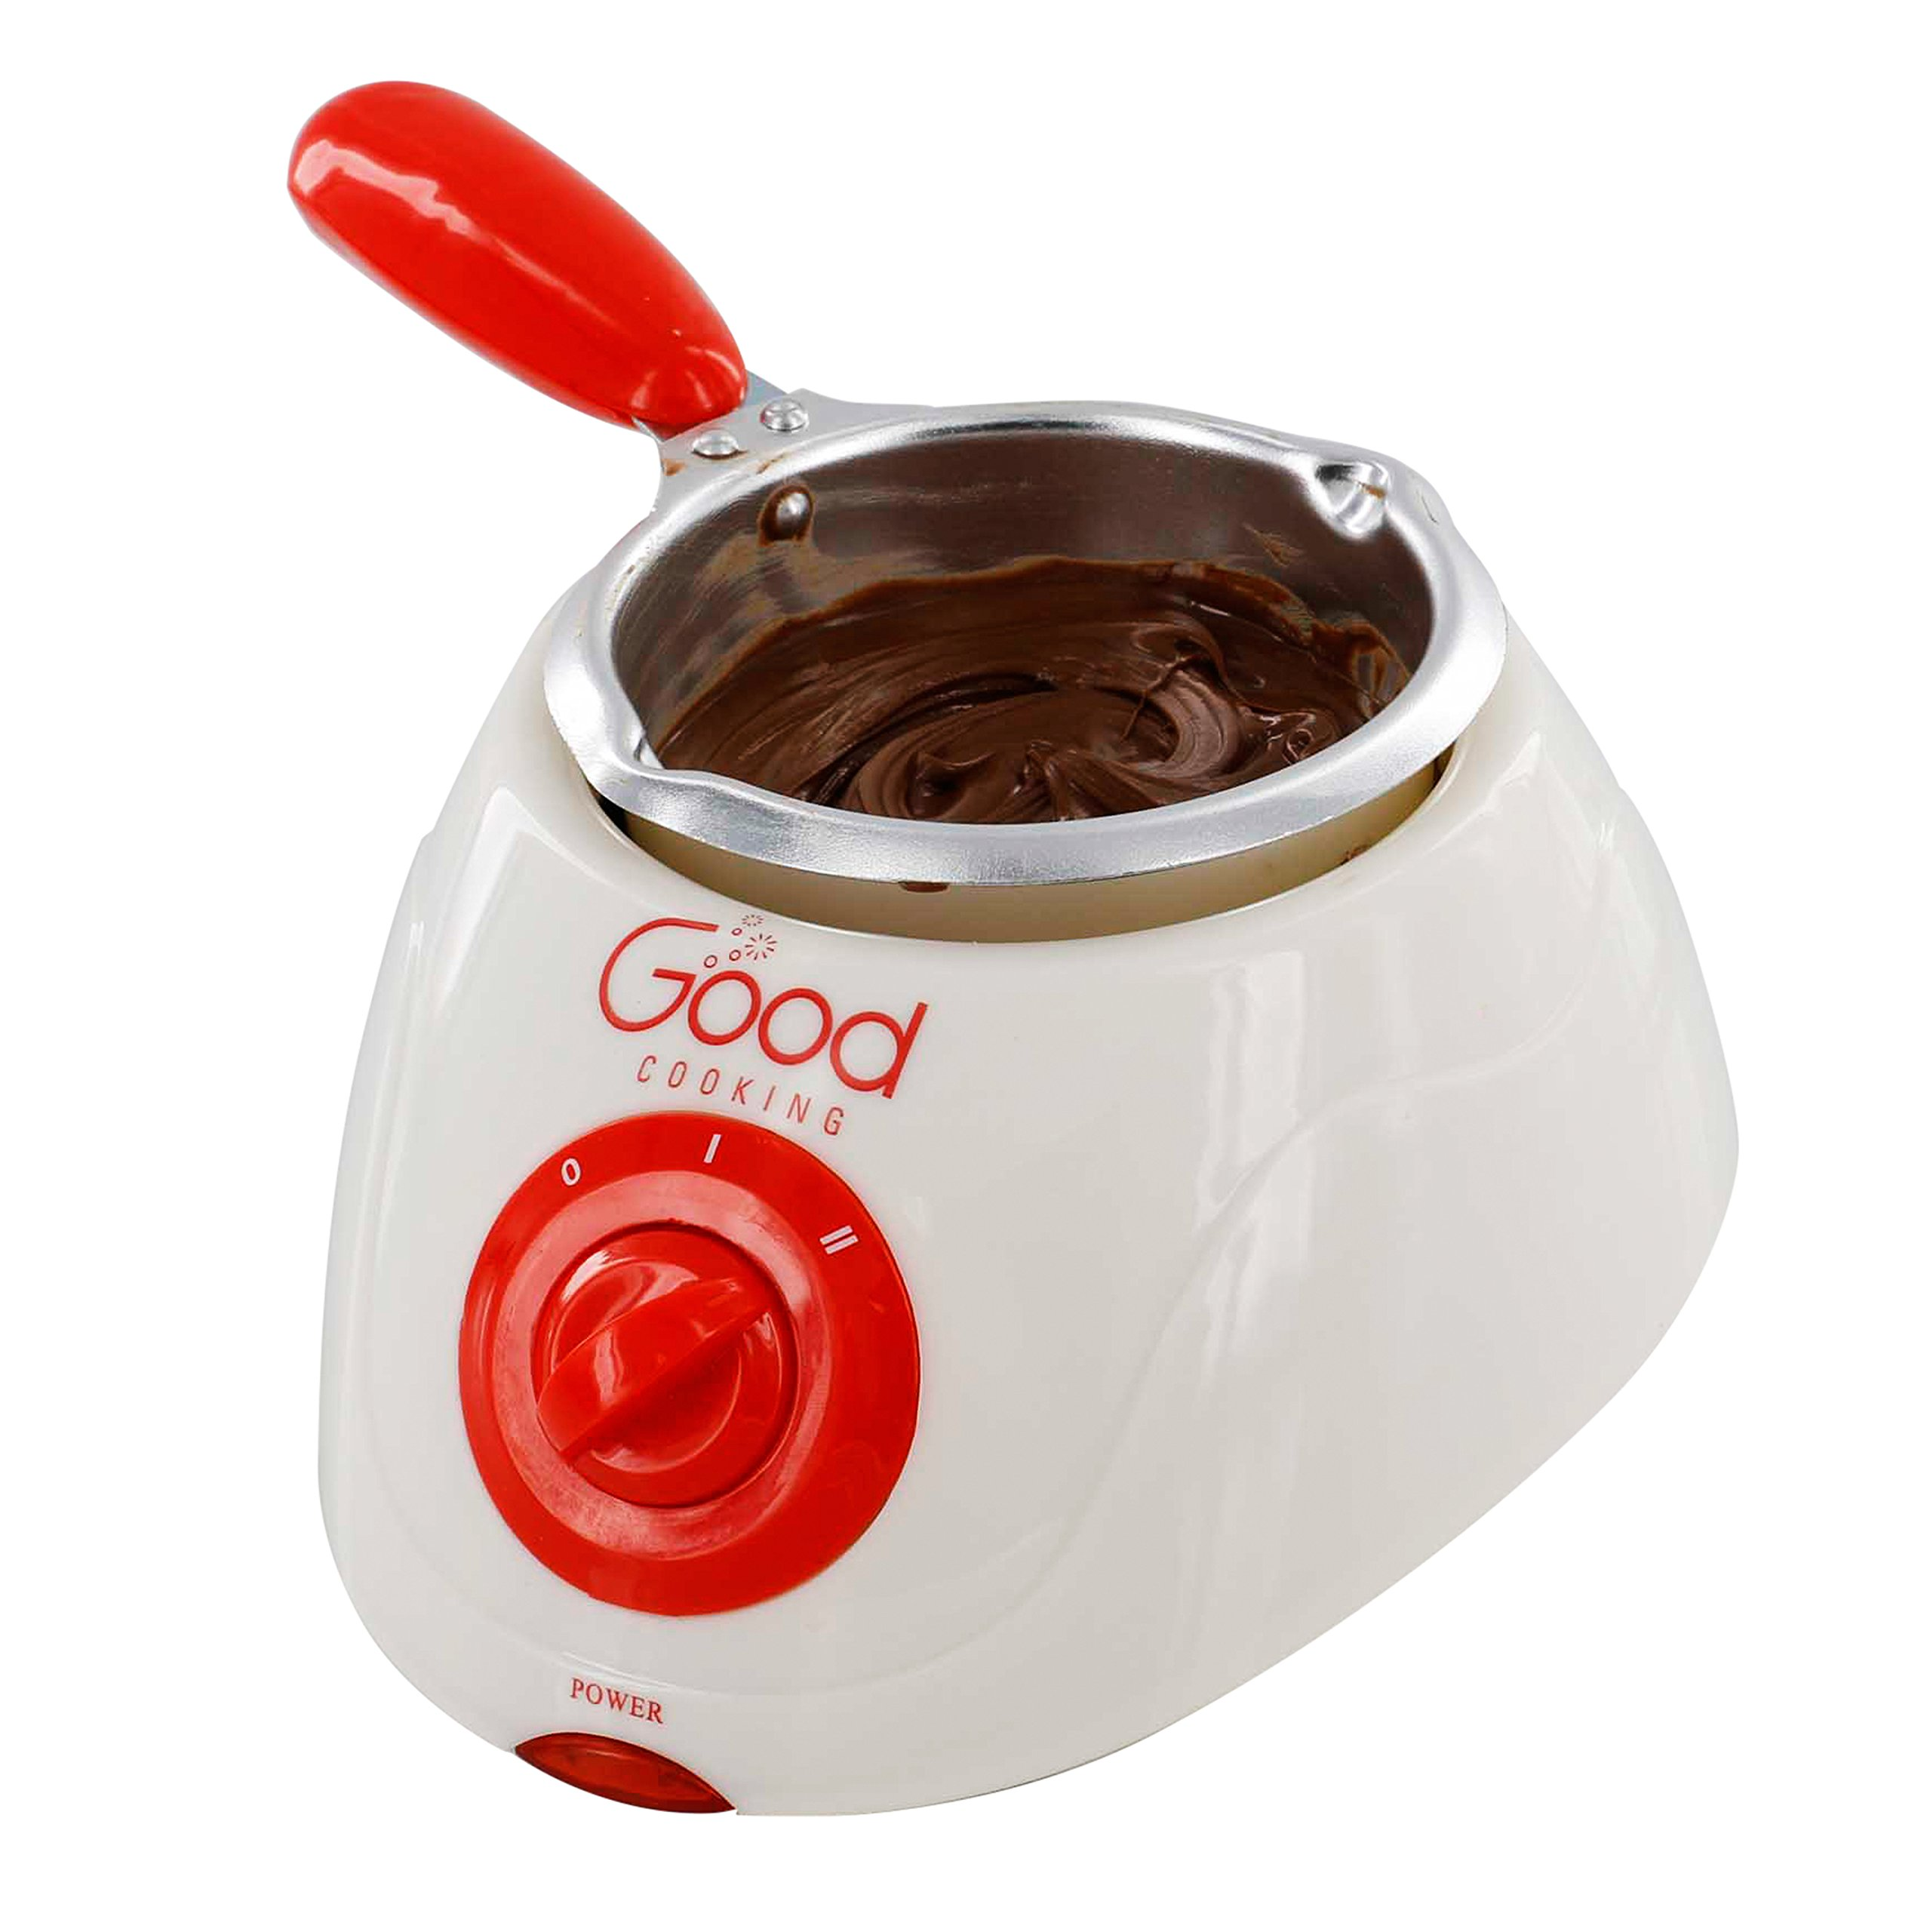 Chocolate Melting Pot- Electric Chocolate Fondue Fountain Pot with over 30 Free Accessories and 12 Recipes by Good Cooking (Image #3)